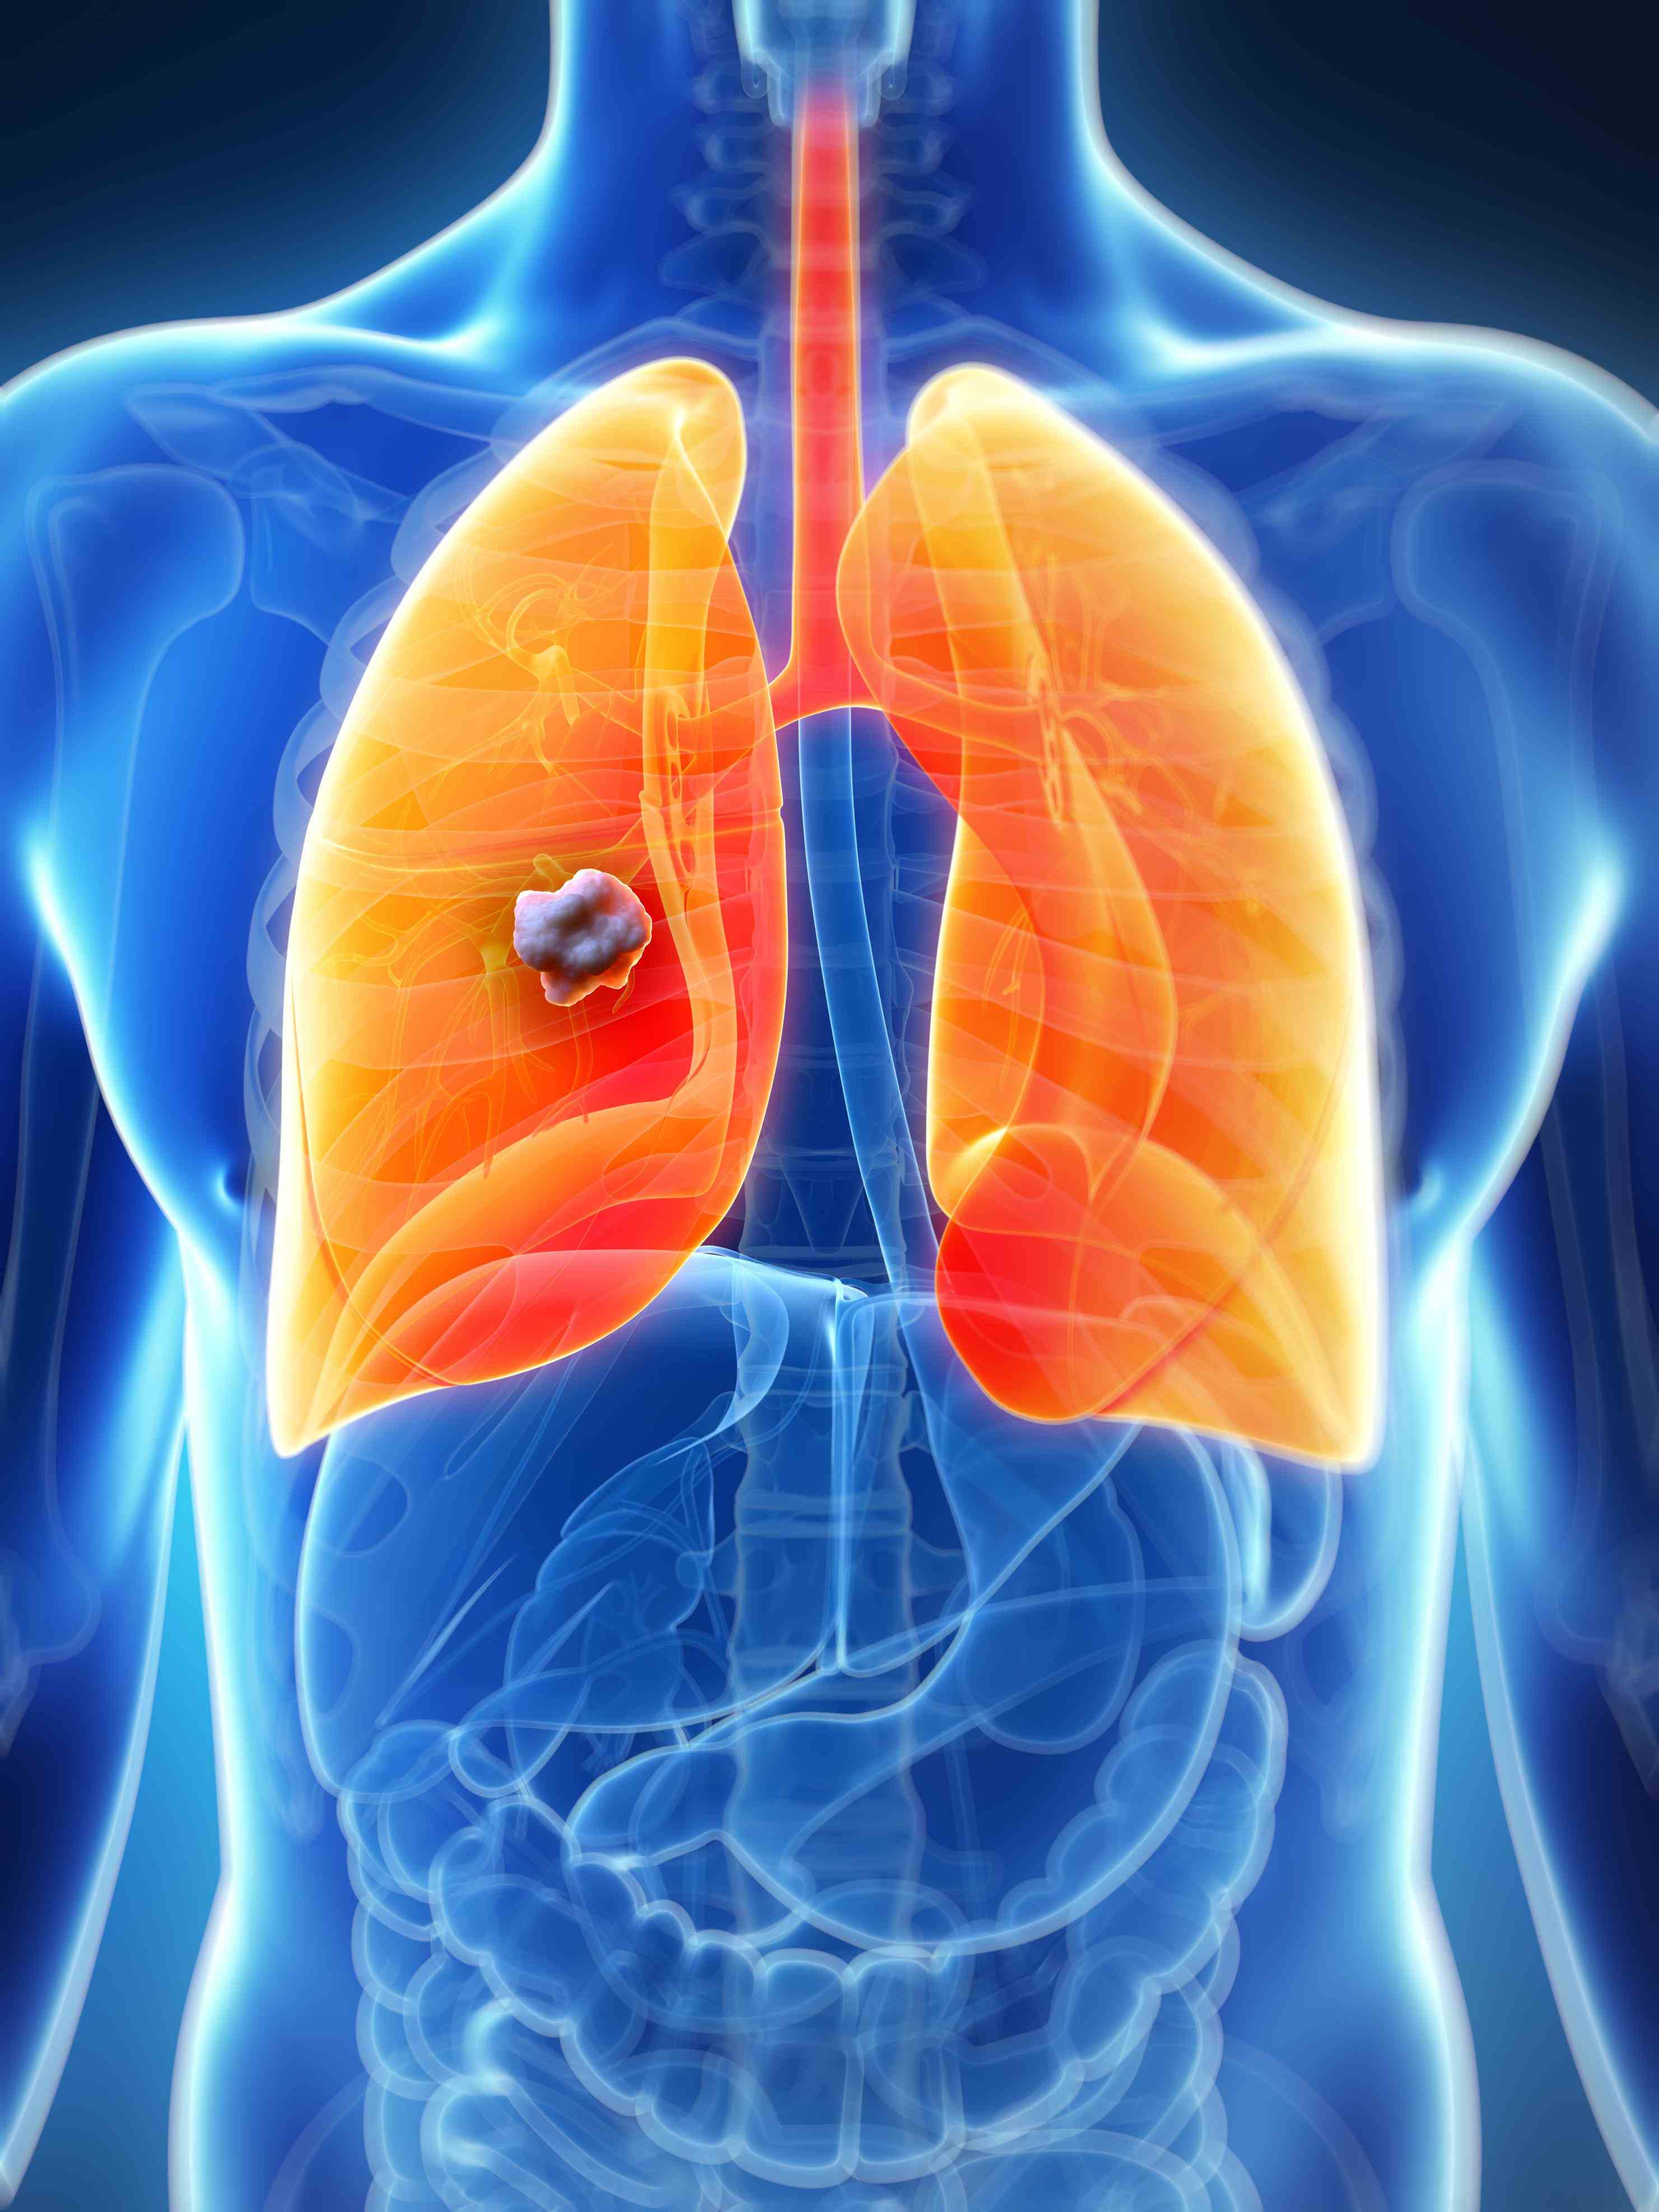 lung Cancer On The Lung cancer is one of